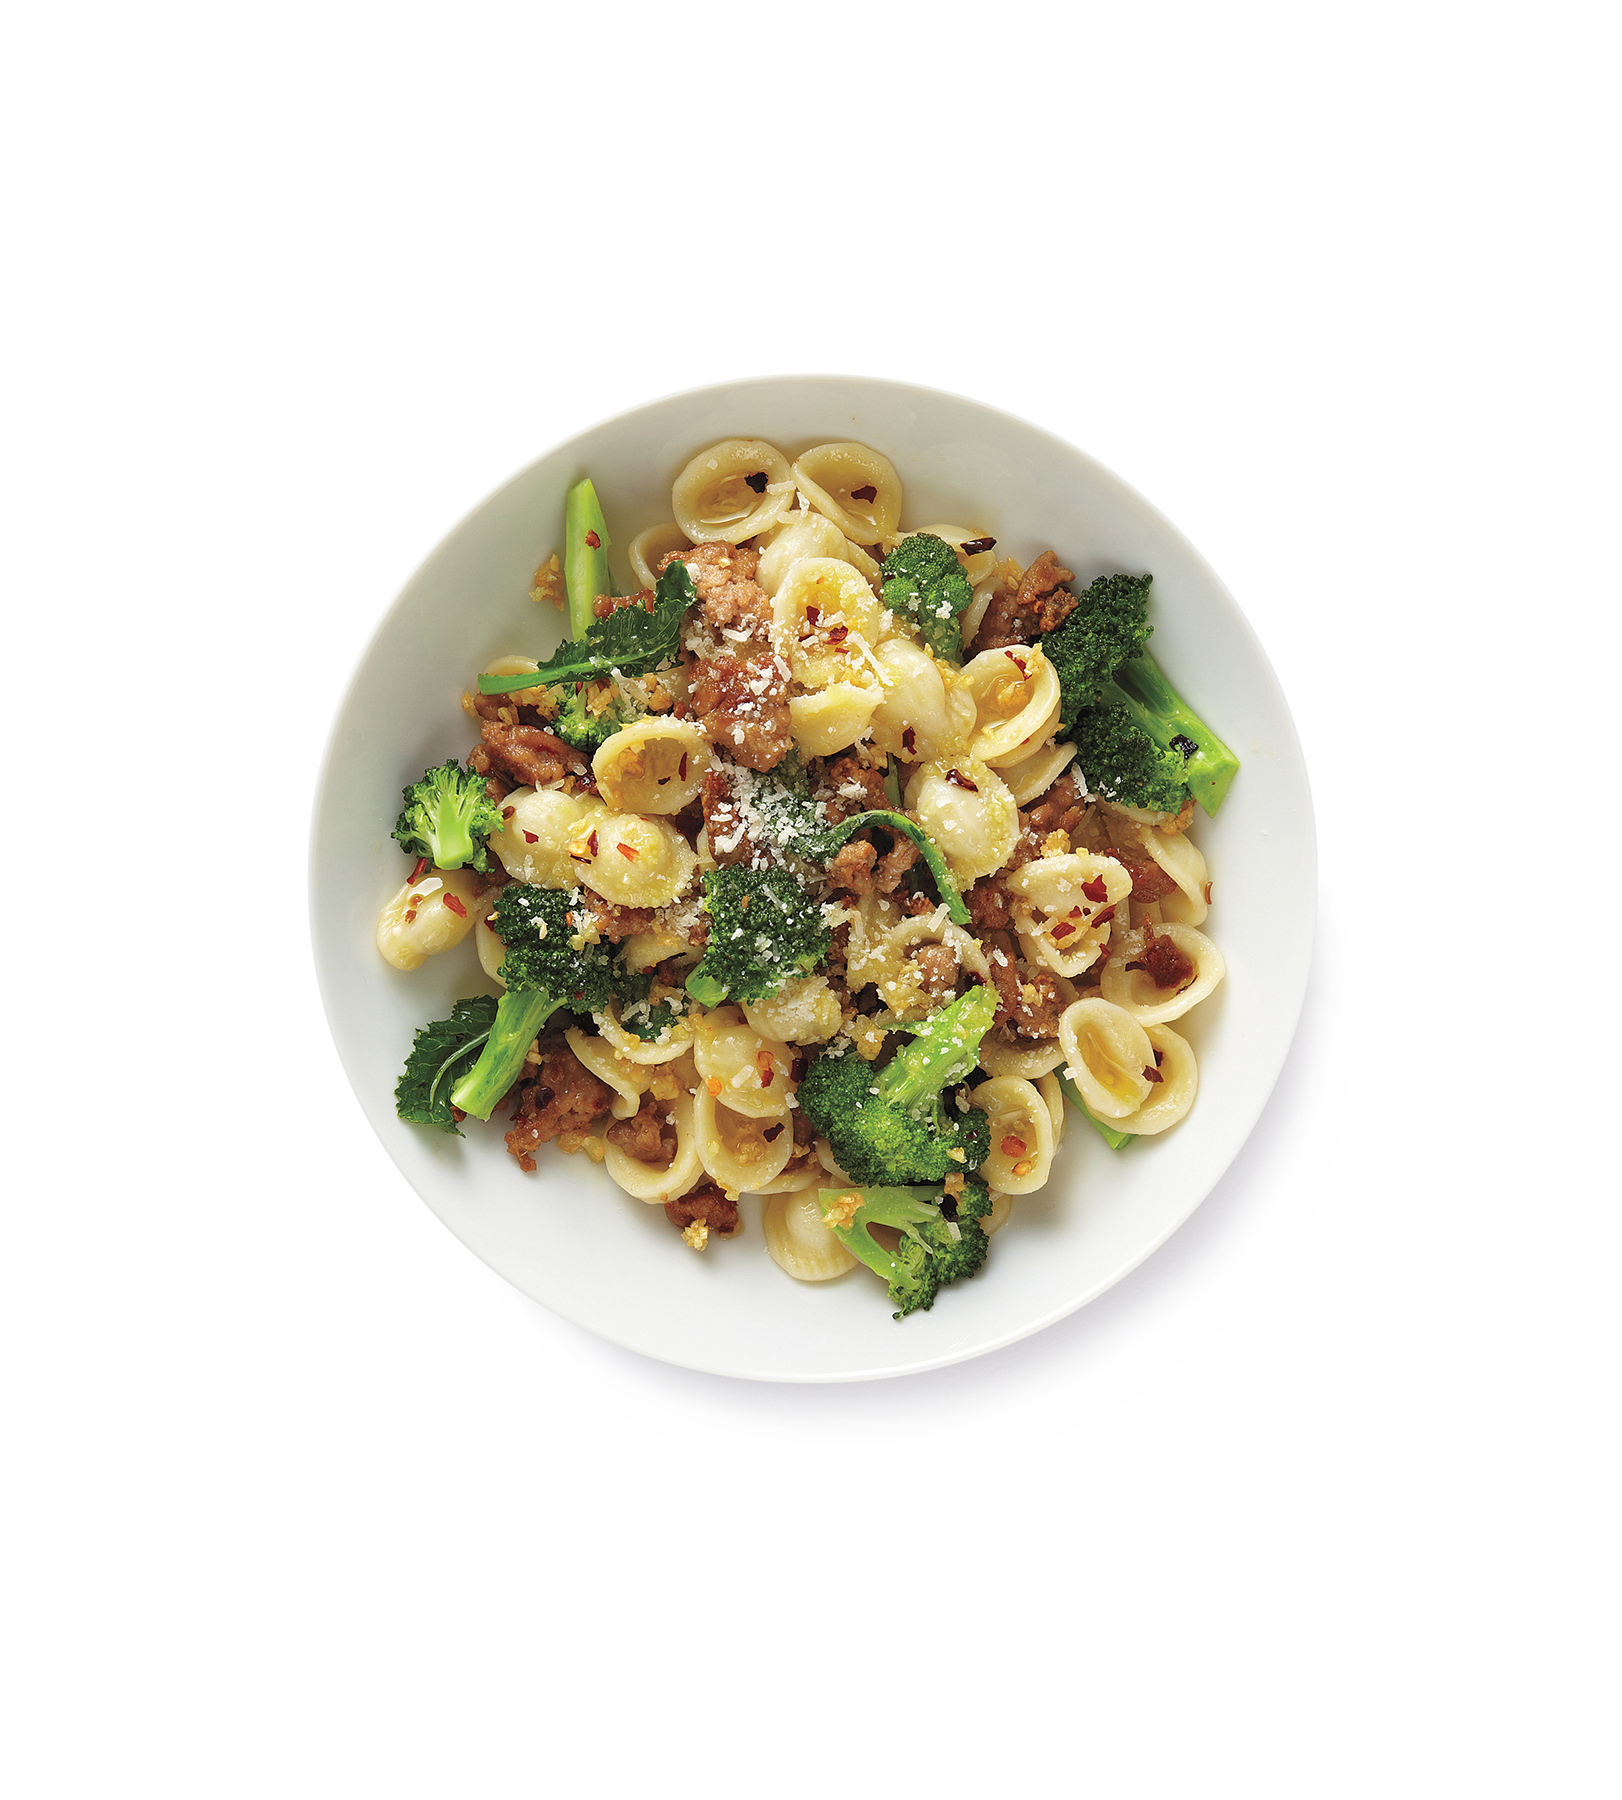 Quick Dinner Ideas: Pasta With Turkey and Broccoli